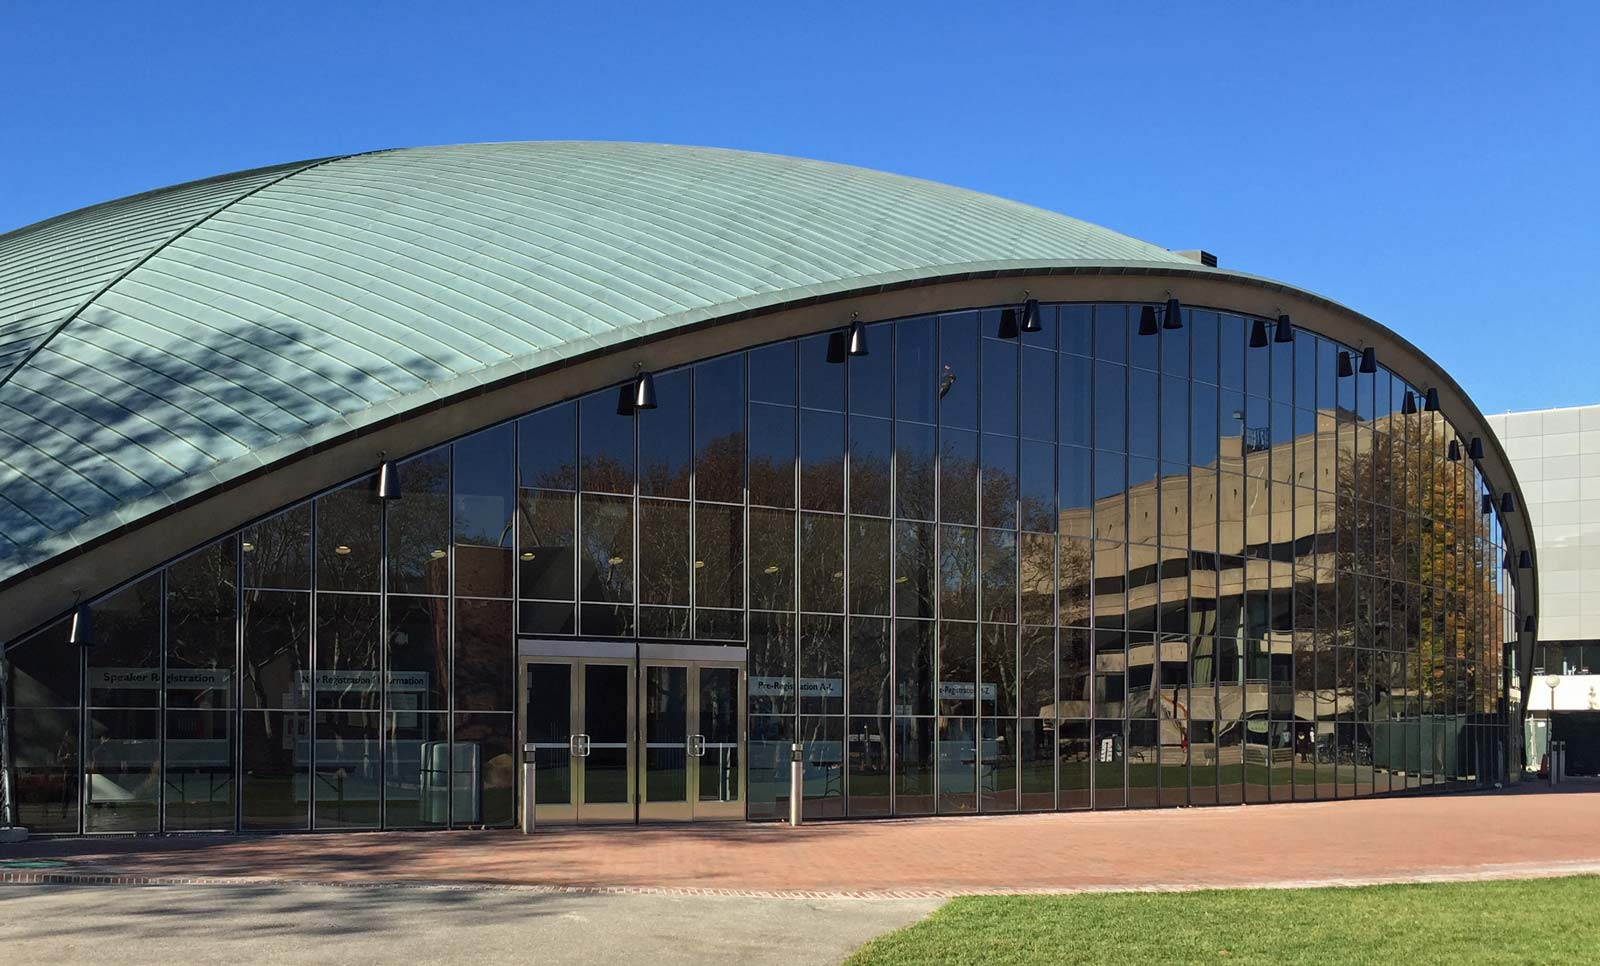 MIT Kresge Auditorium South Wall - Custom Glazing Systems in place